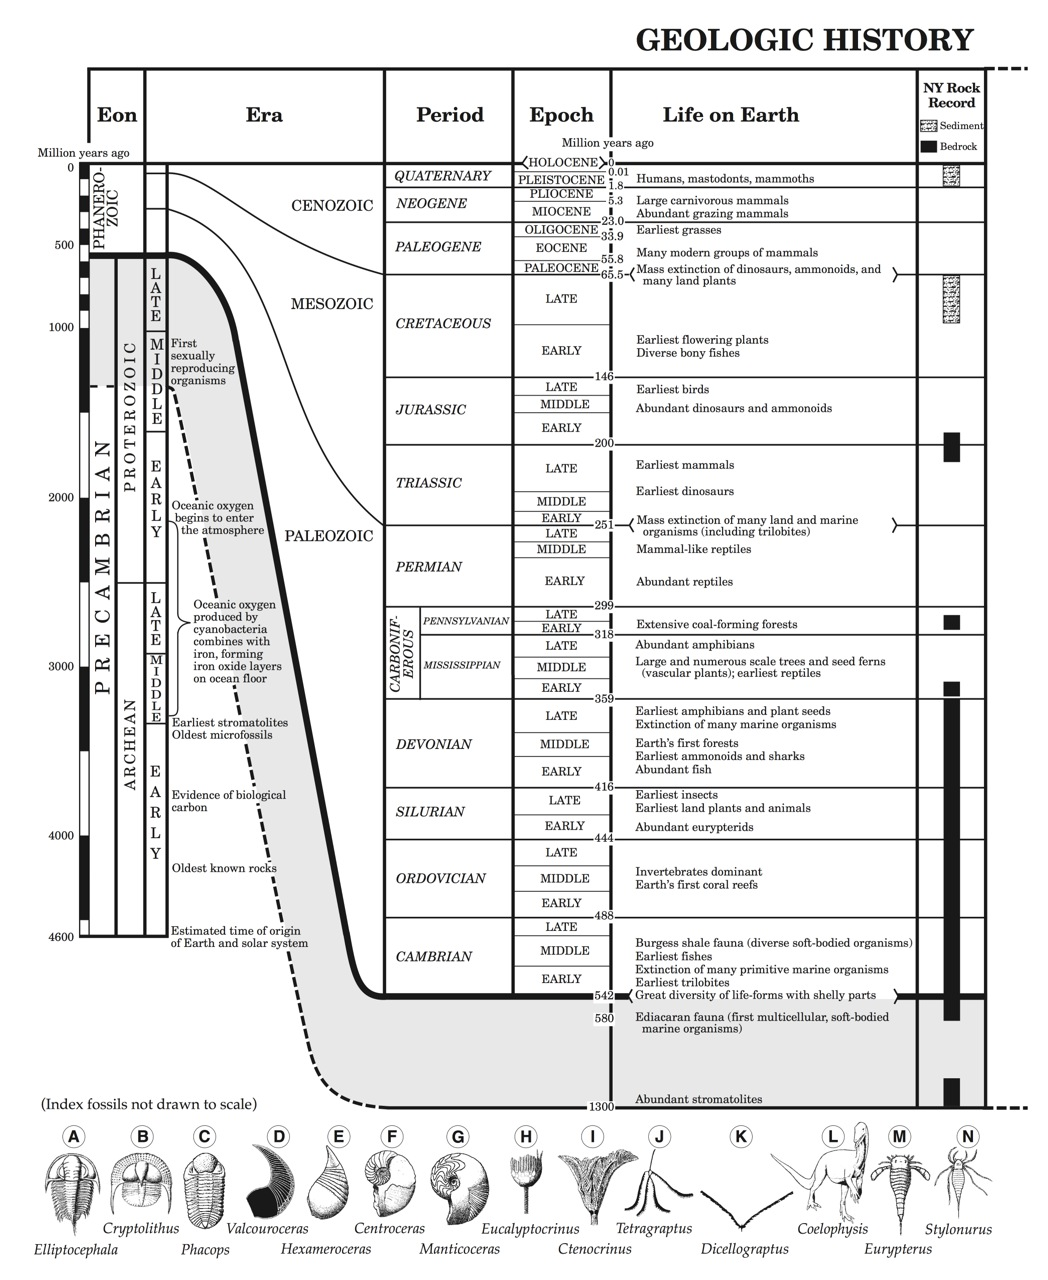 science reference sheet Page 1 science page 1 s t n e m e l e f o e l b a t ci d oi r e p  aims science reference sheet.